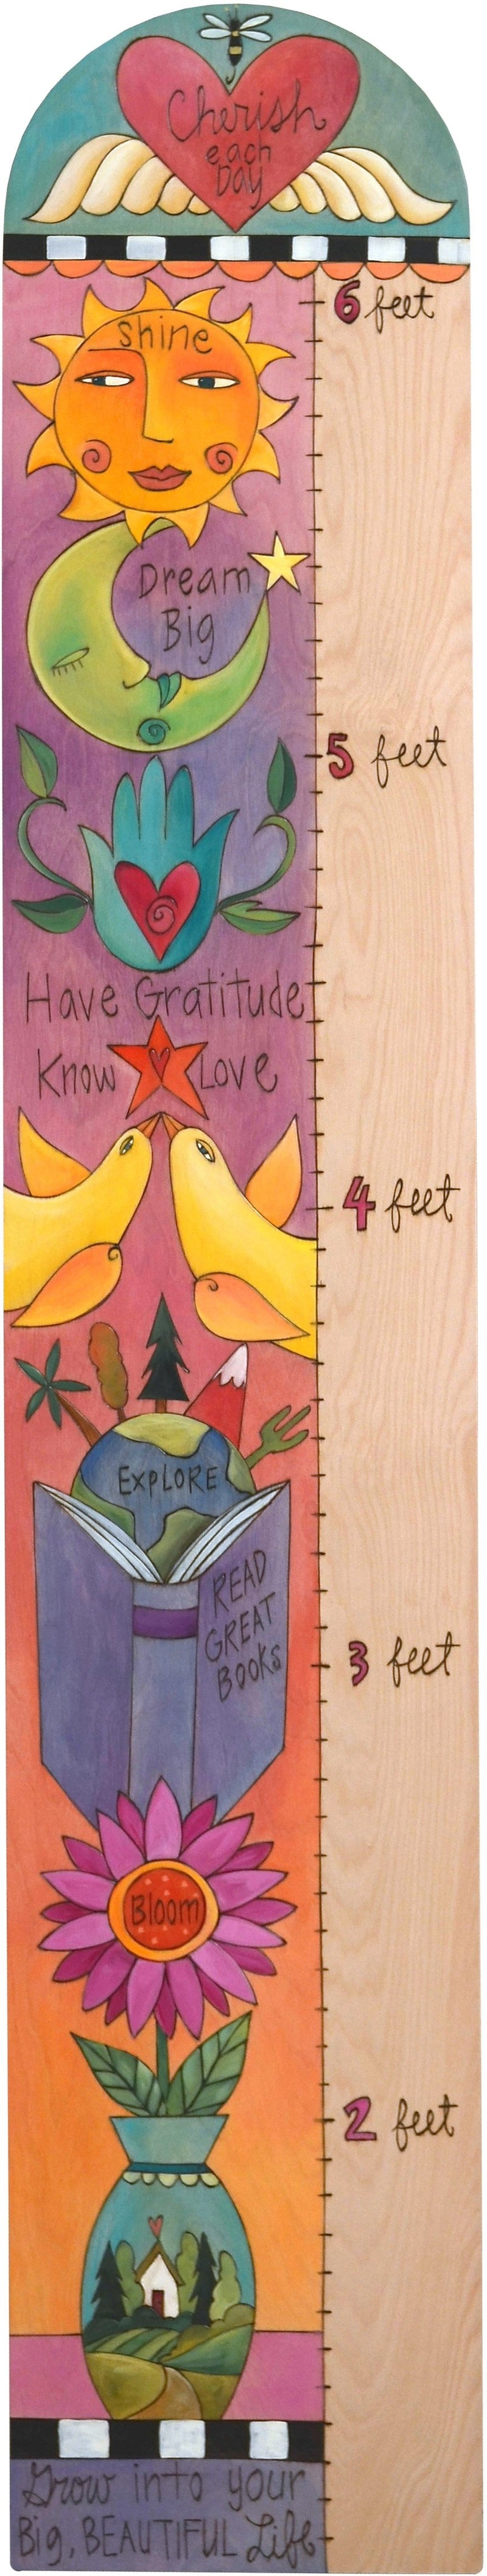 Everlasting Growth Chart –  Colorful growth chart with inspirational messages, topped with a heart with wings